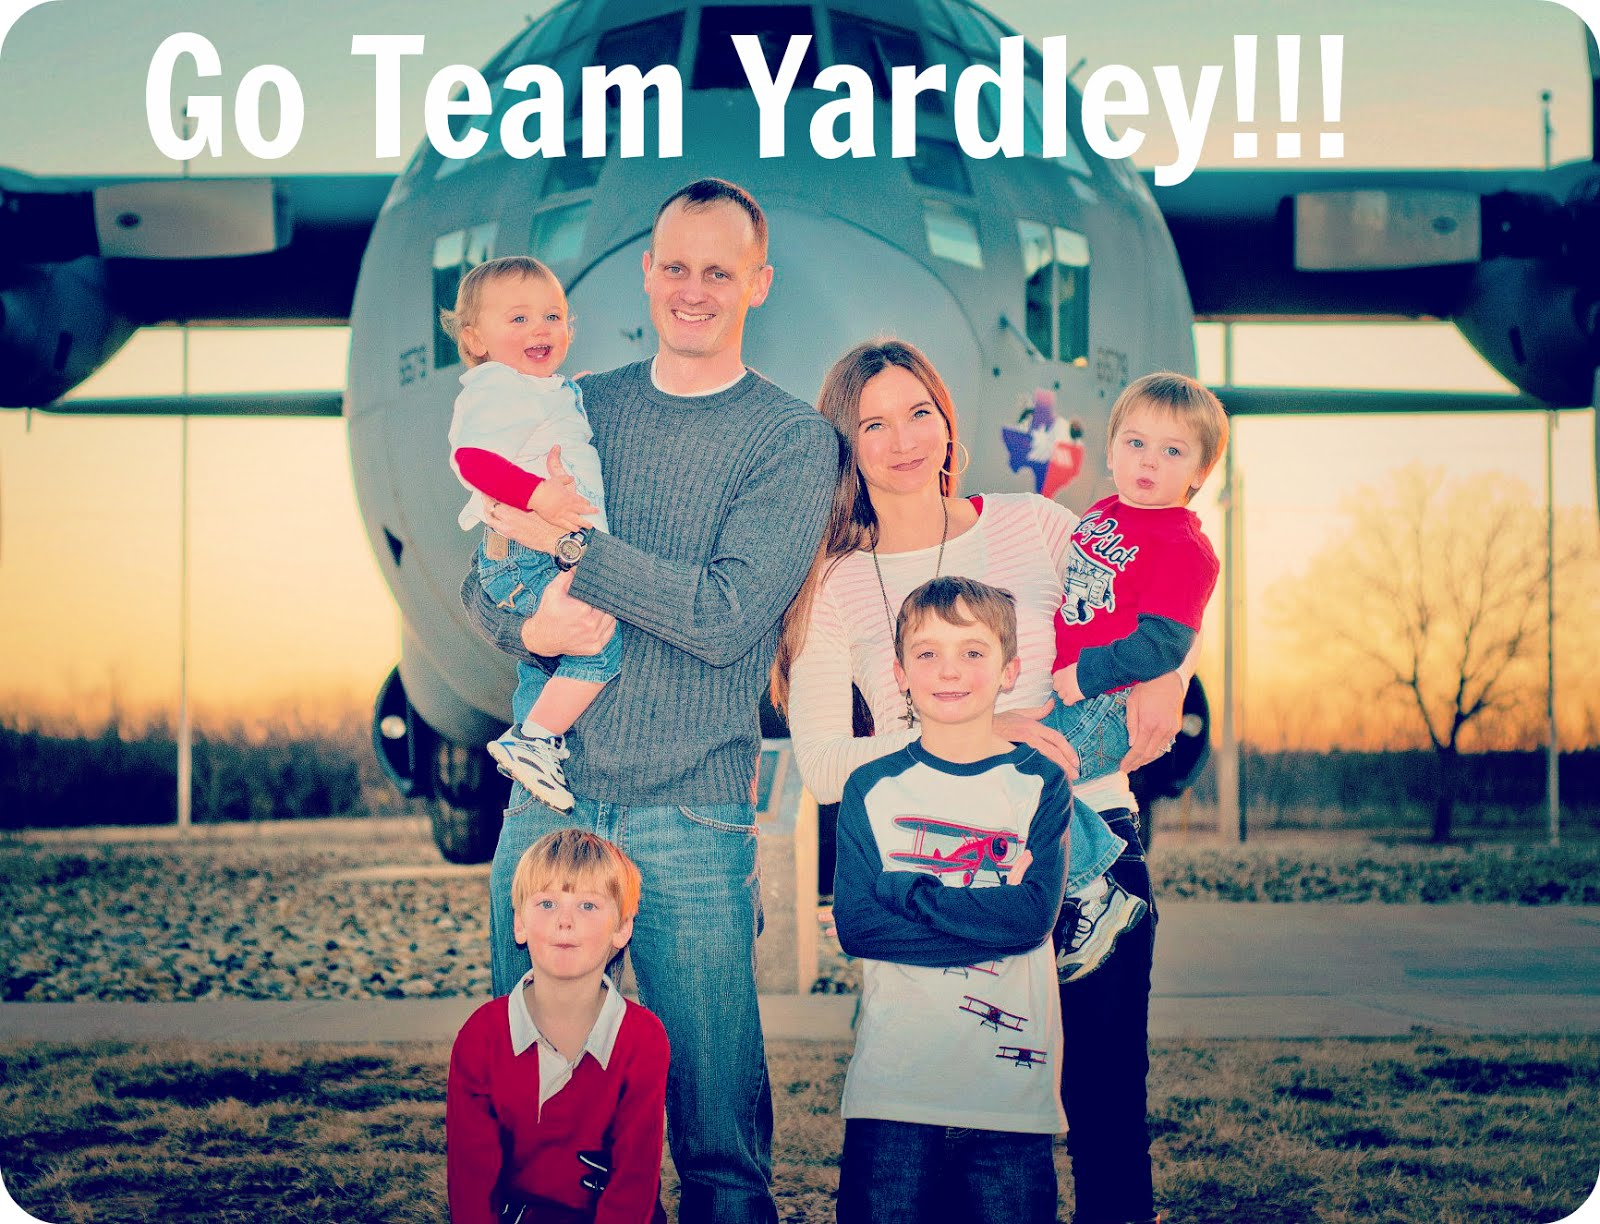 Go Team Yardley!